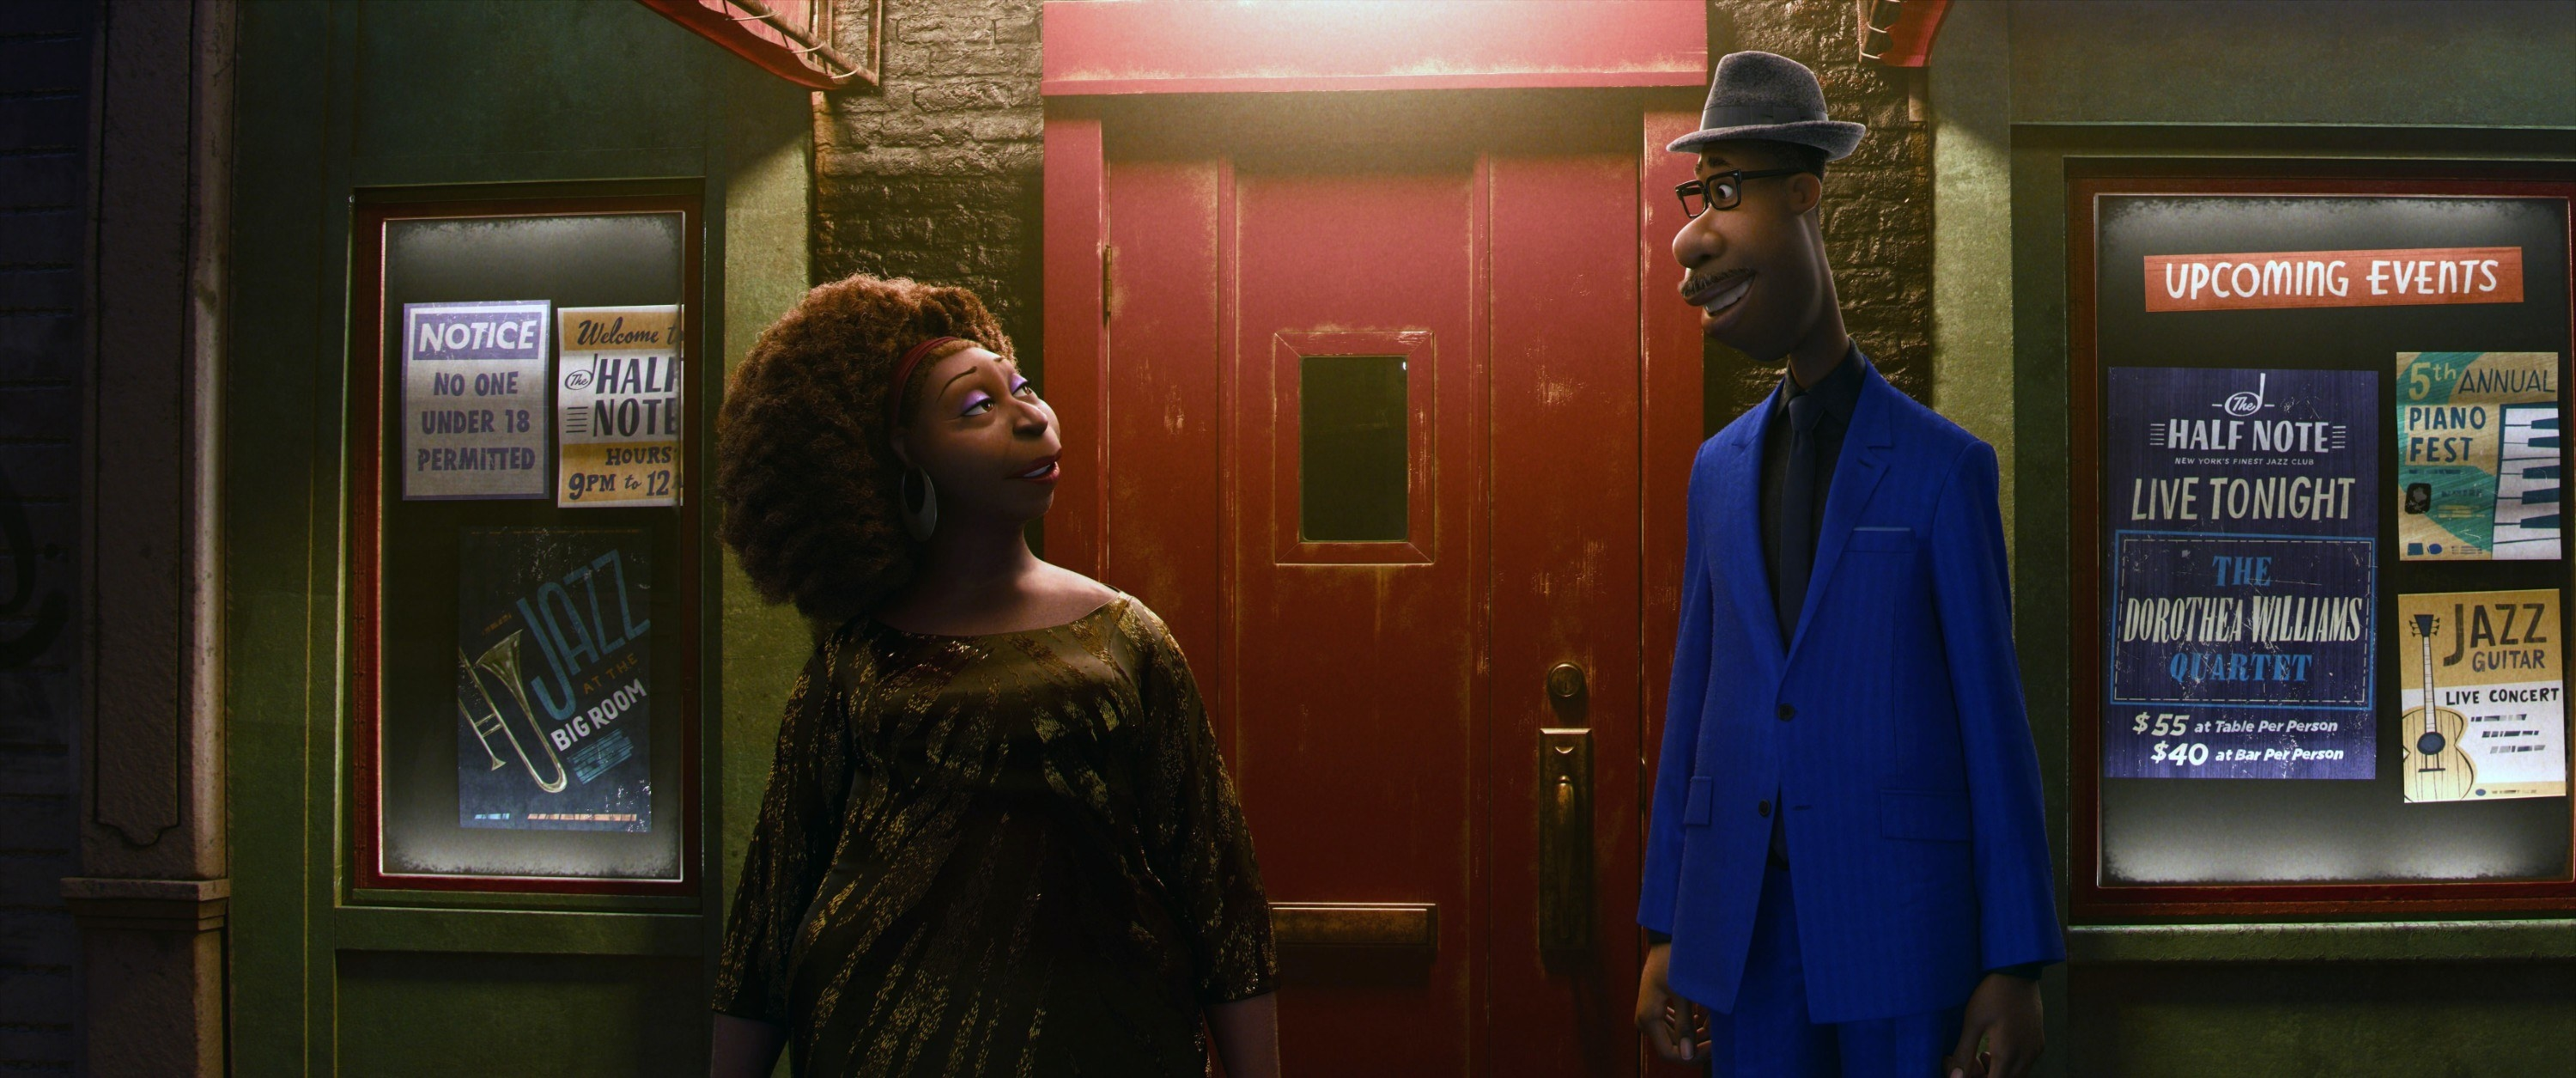 SOUL, from left: Dorothea Williams (voice: Angela Bassett), Joe Gardner (voice: Jamie Foxx), 2020